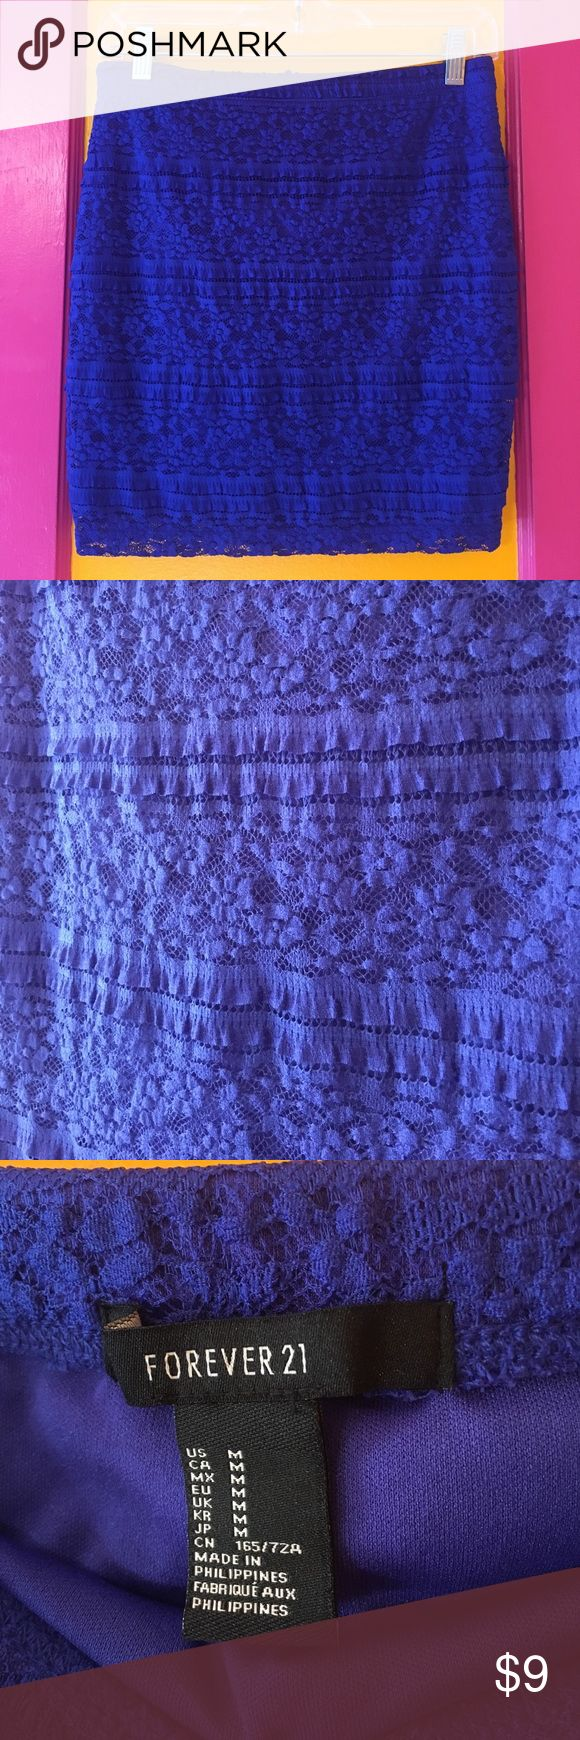 Gorgeous Royal Blue Lace Mini Skirt Never worn and brand new condition! Very stretchy so could fit a size large as well. Features small frill and lace throughout Skirt. Is 16 in long. Forever 21 Skirts Mini